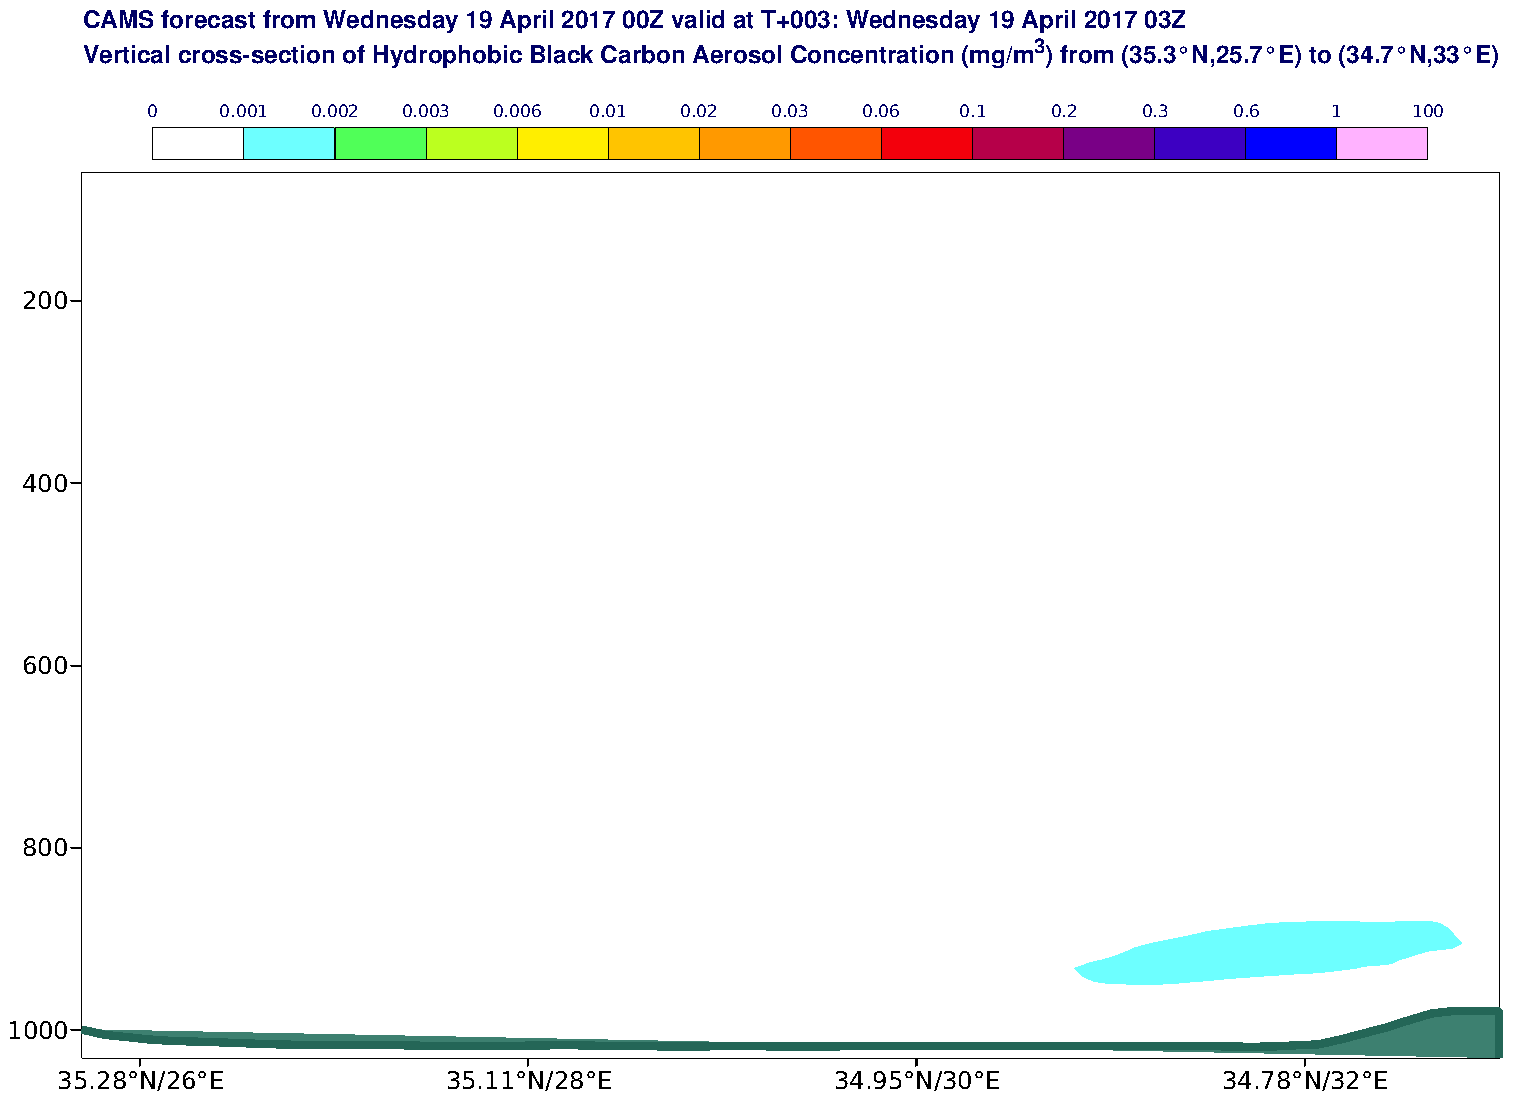 Vertical cross-section of Hydrophobic Black Carbon Aerosol Concentration (mg/m3) valid at T3 - 2017-04-19 03:00